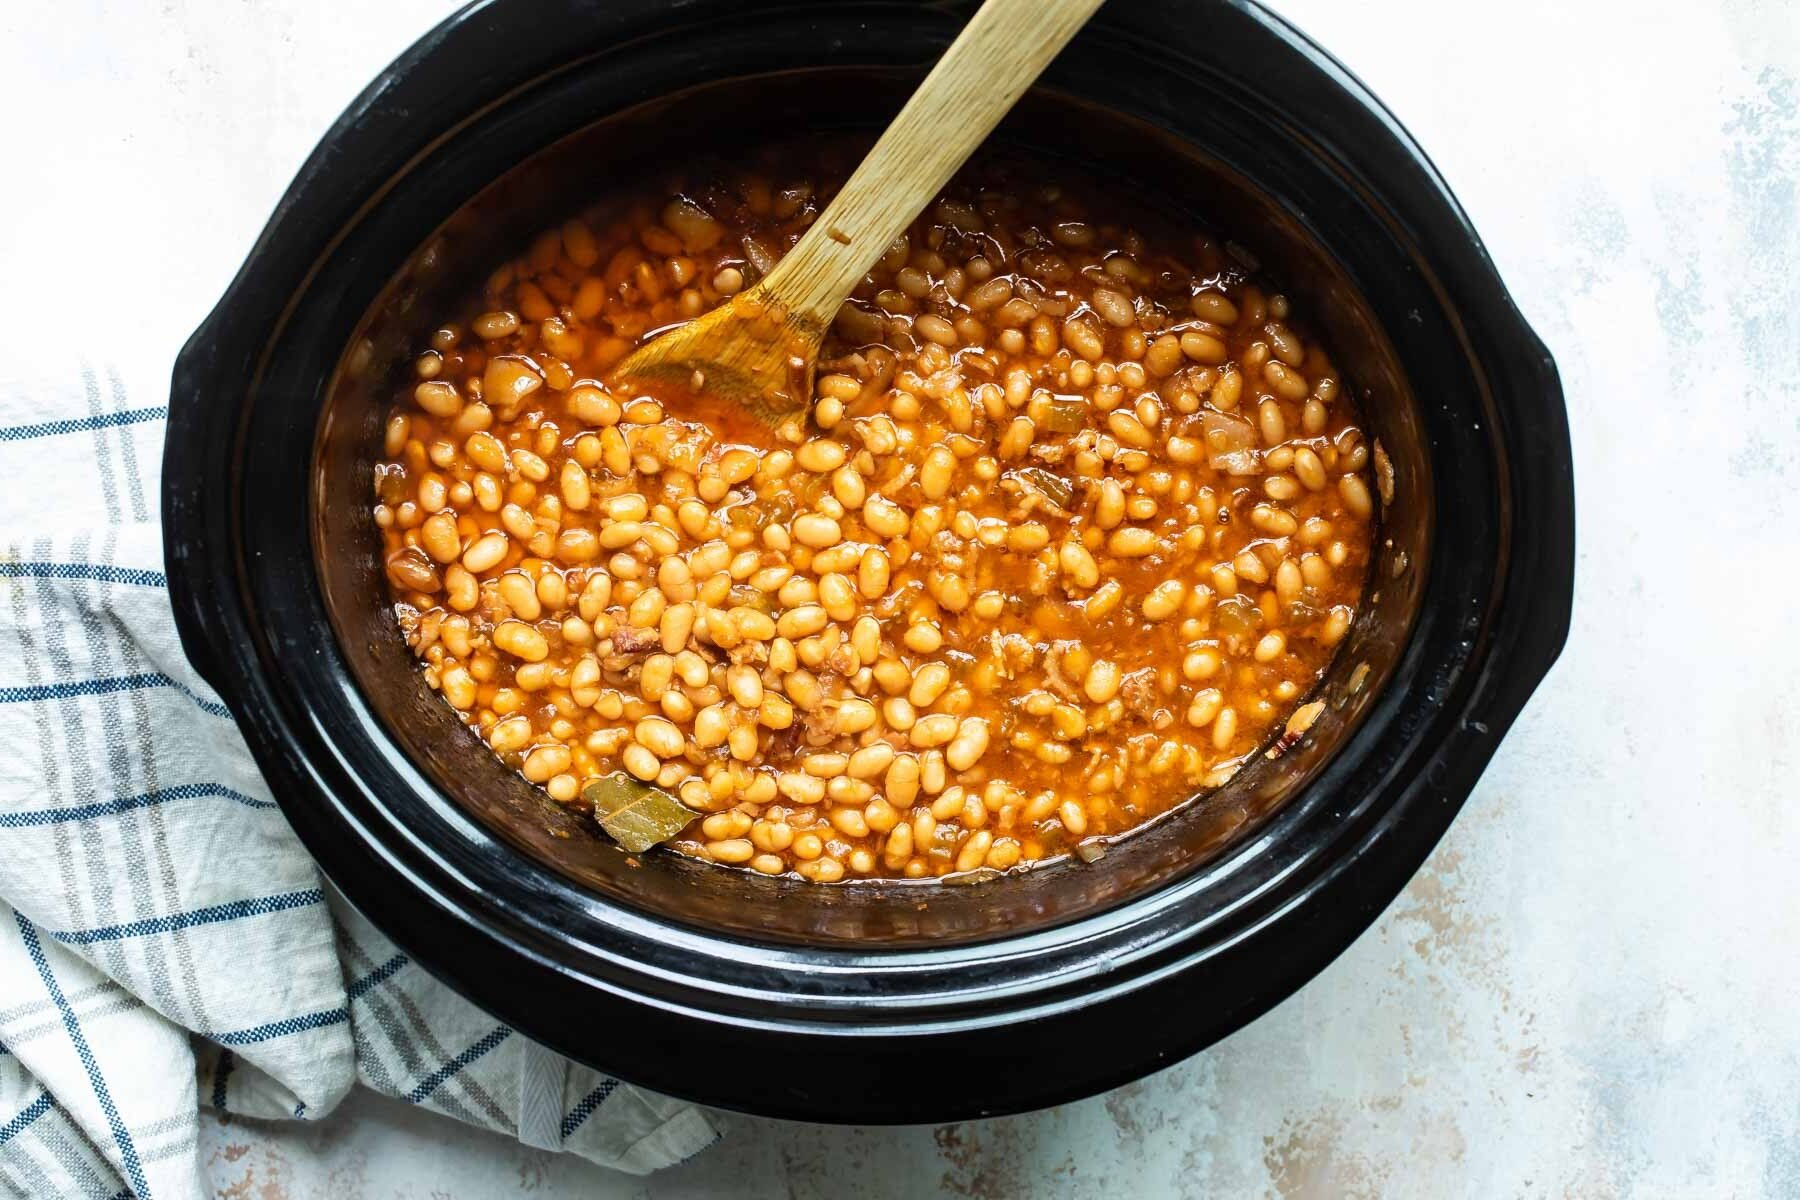 Homemade baked beans in a slow cooker.